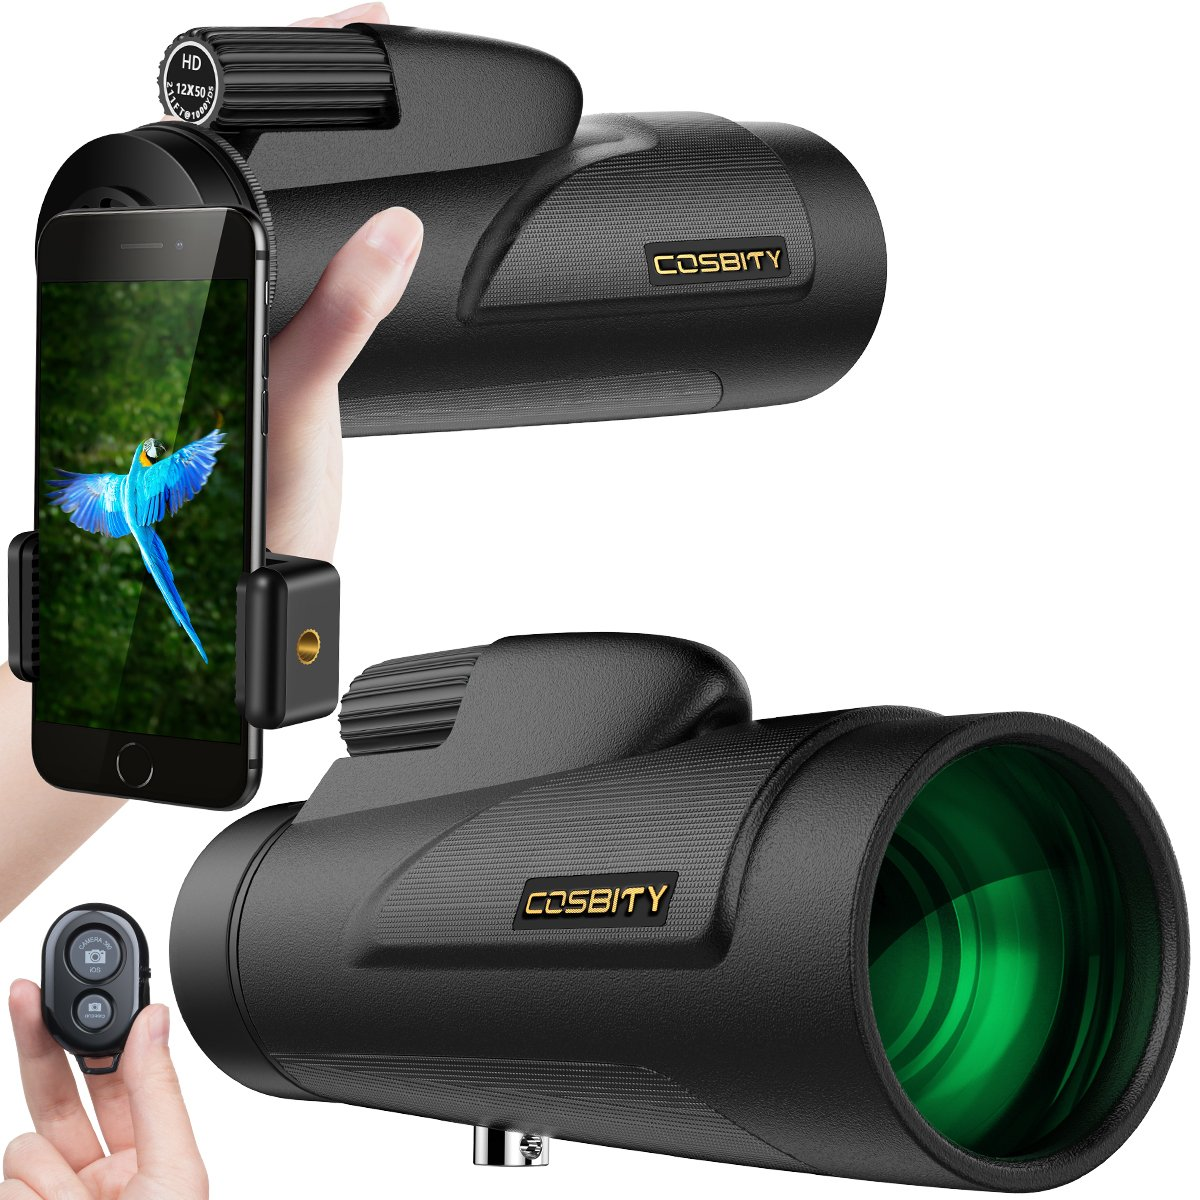 Monocular Telescopes, 12x50 Low Night Vision Spotting Scope for Adults with Cell Phone Photography Adapter and Wireless Camera Shutter Remote Control for Bird Watching/Hunting/Camping/Travelling COSBITY N/A